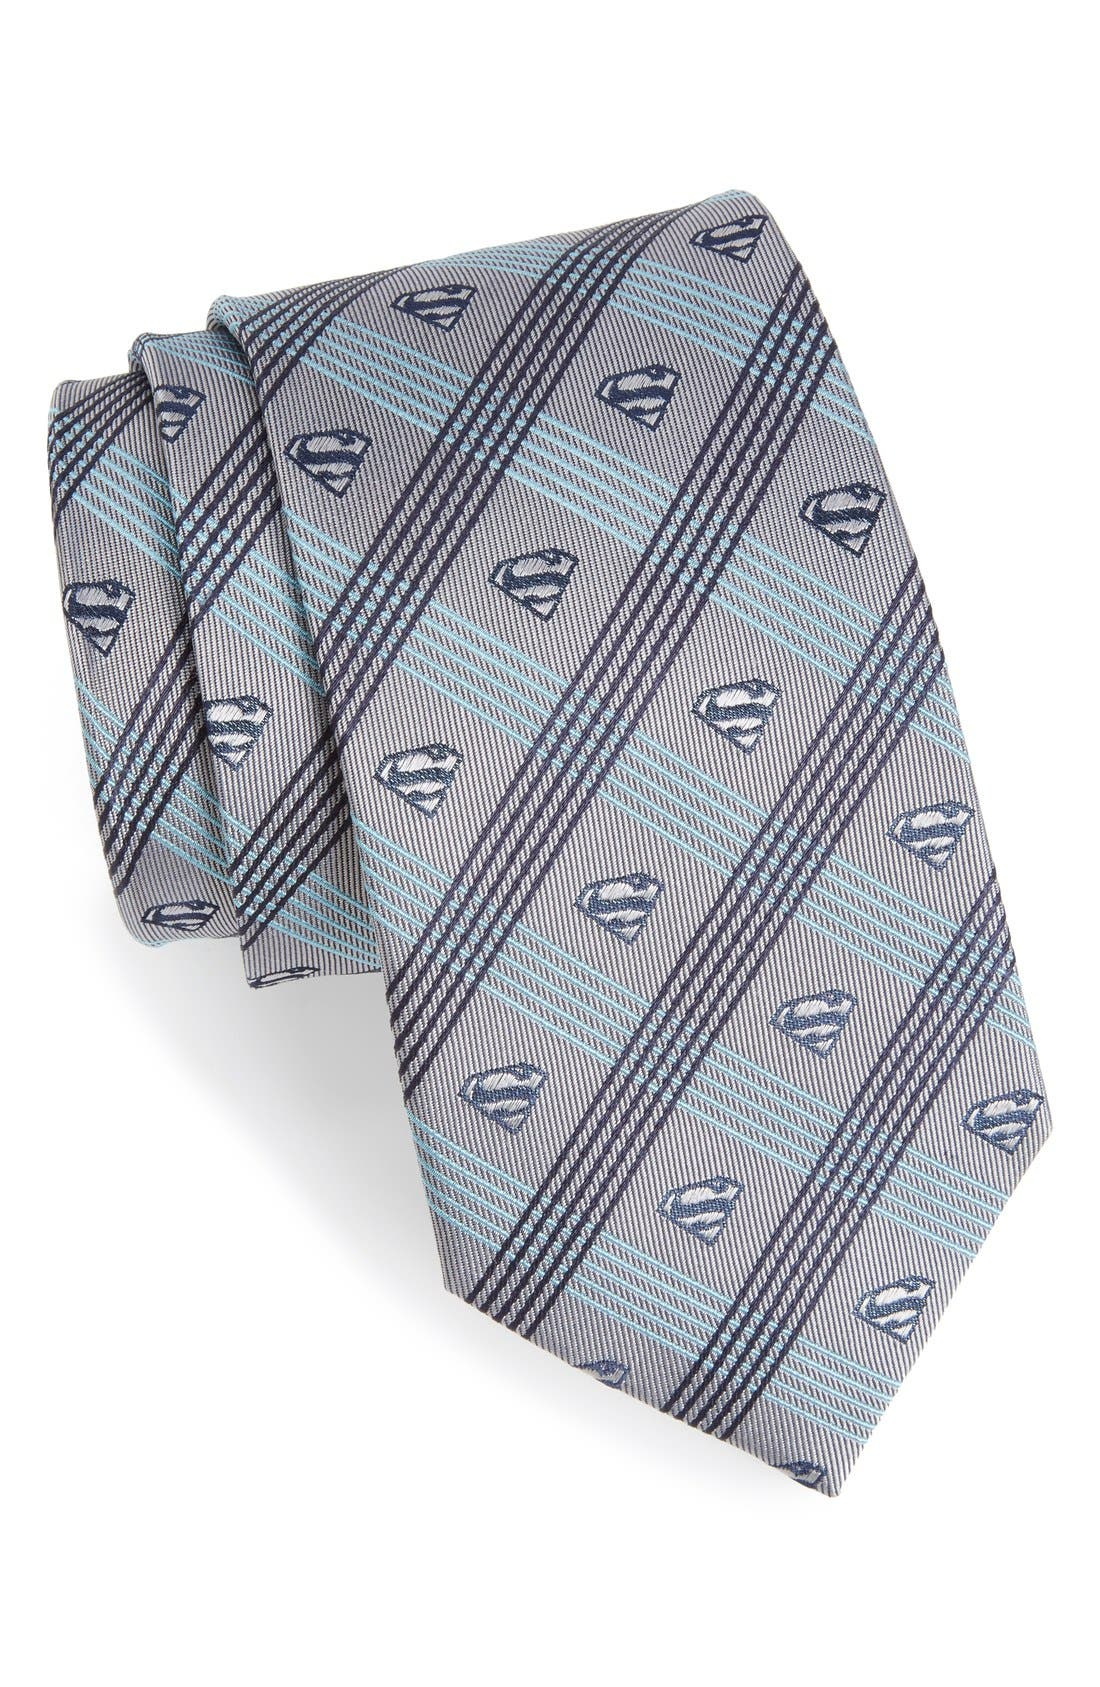 'Superman' Plaid Silk Tie,                         Main,                         color, Grey